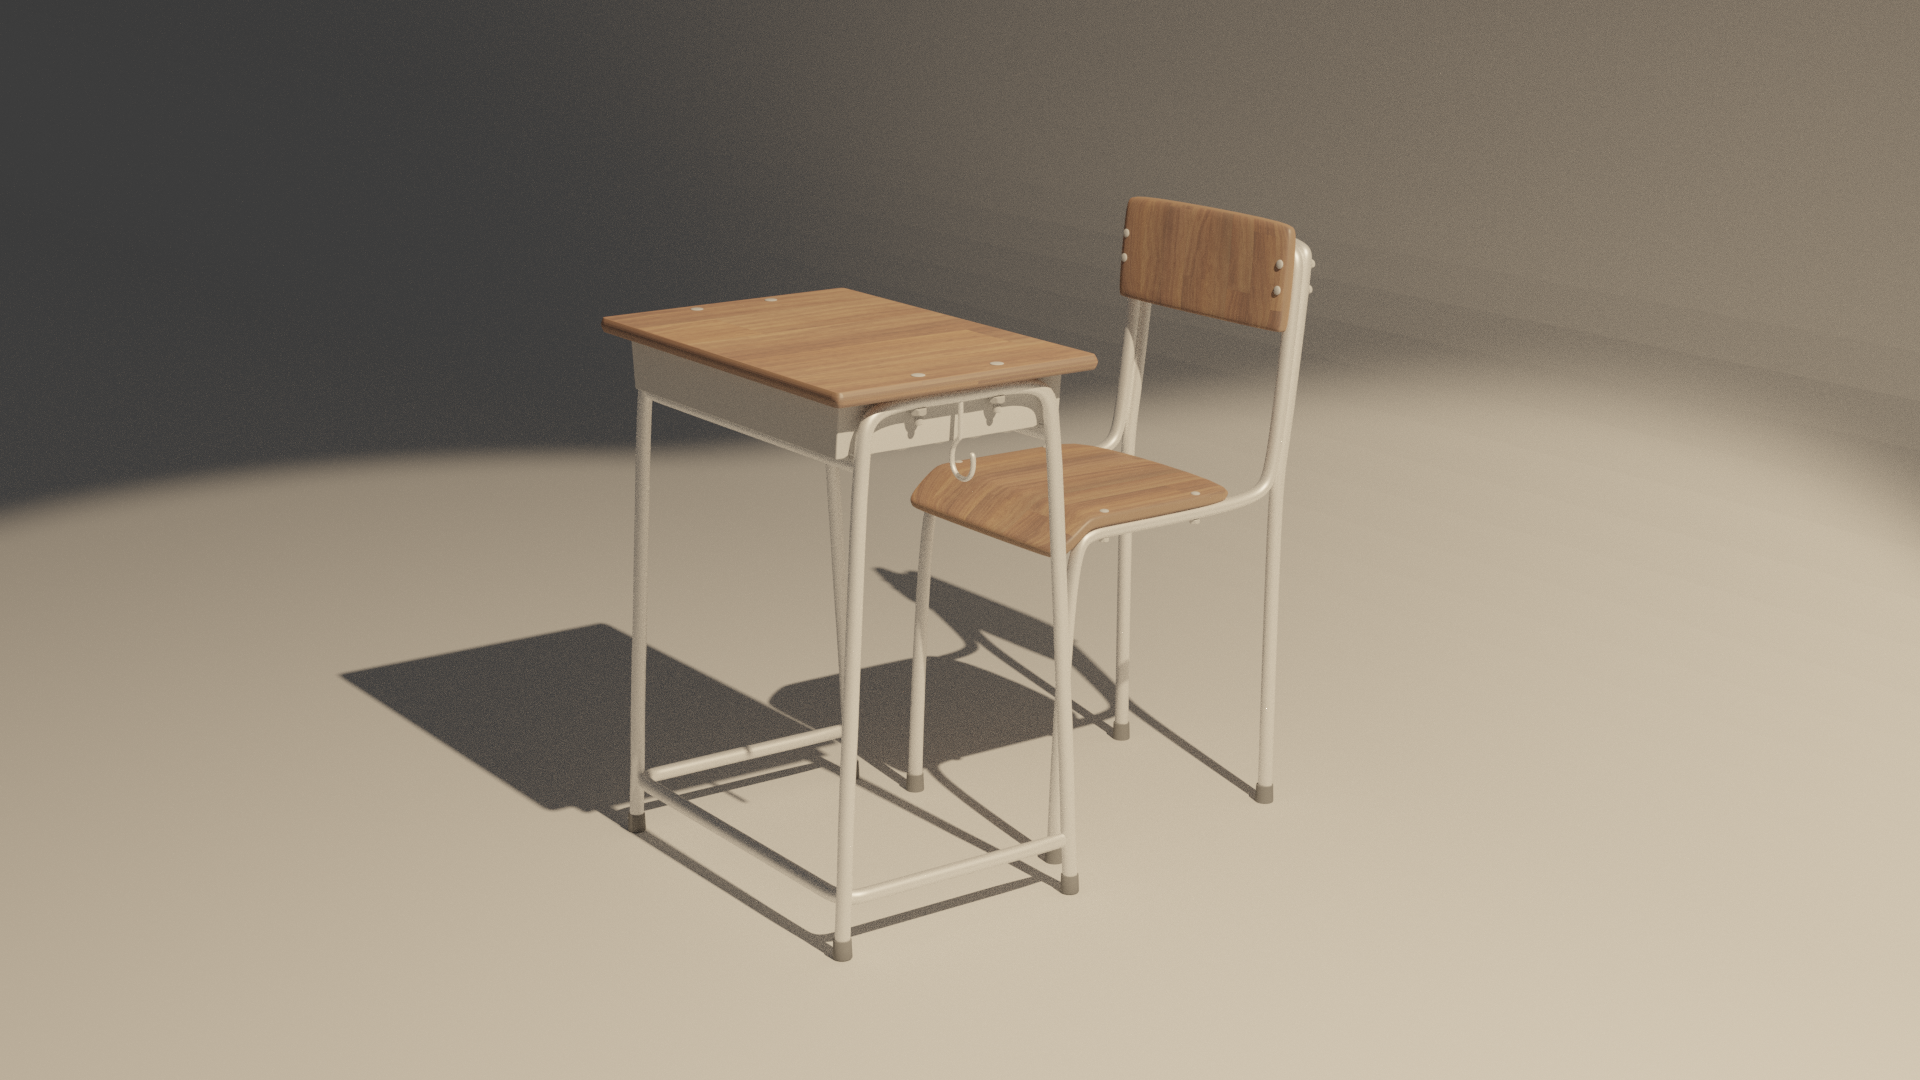 Asia school style desk and chair preview image 1